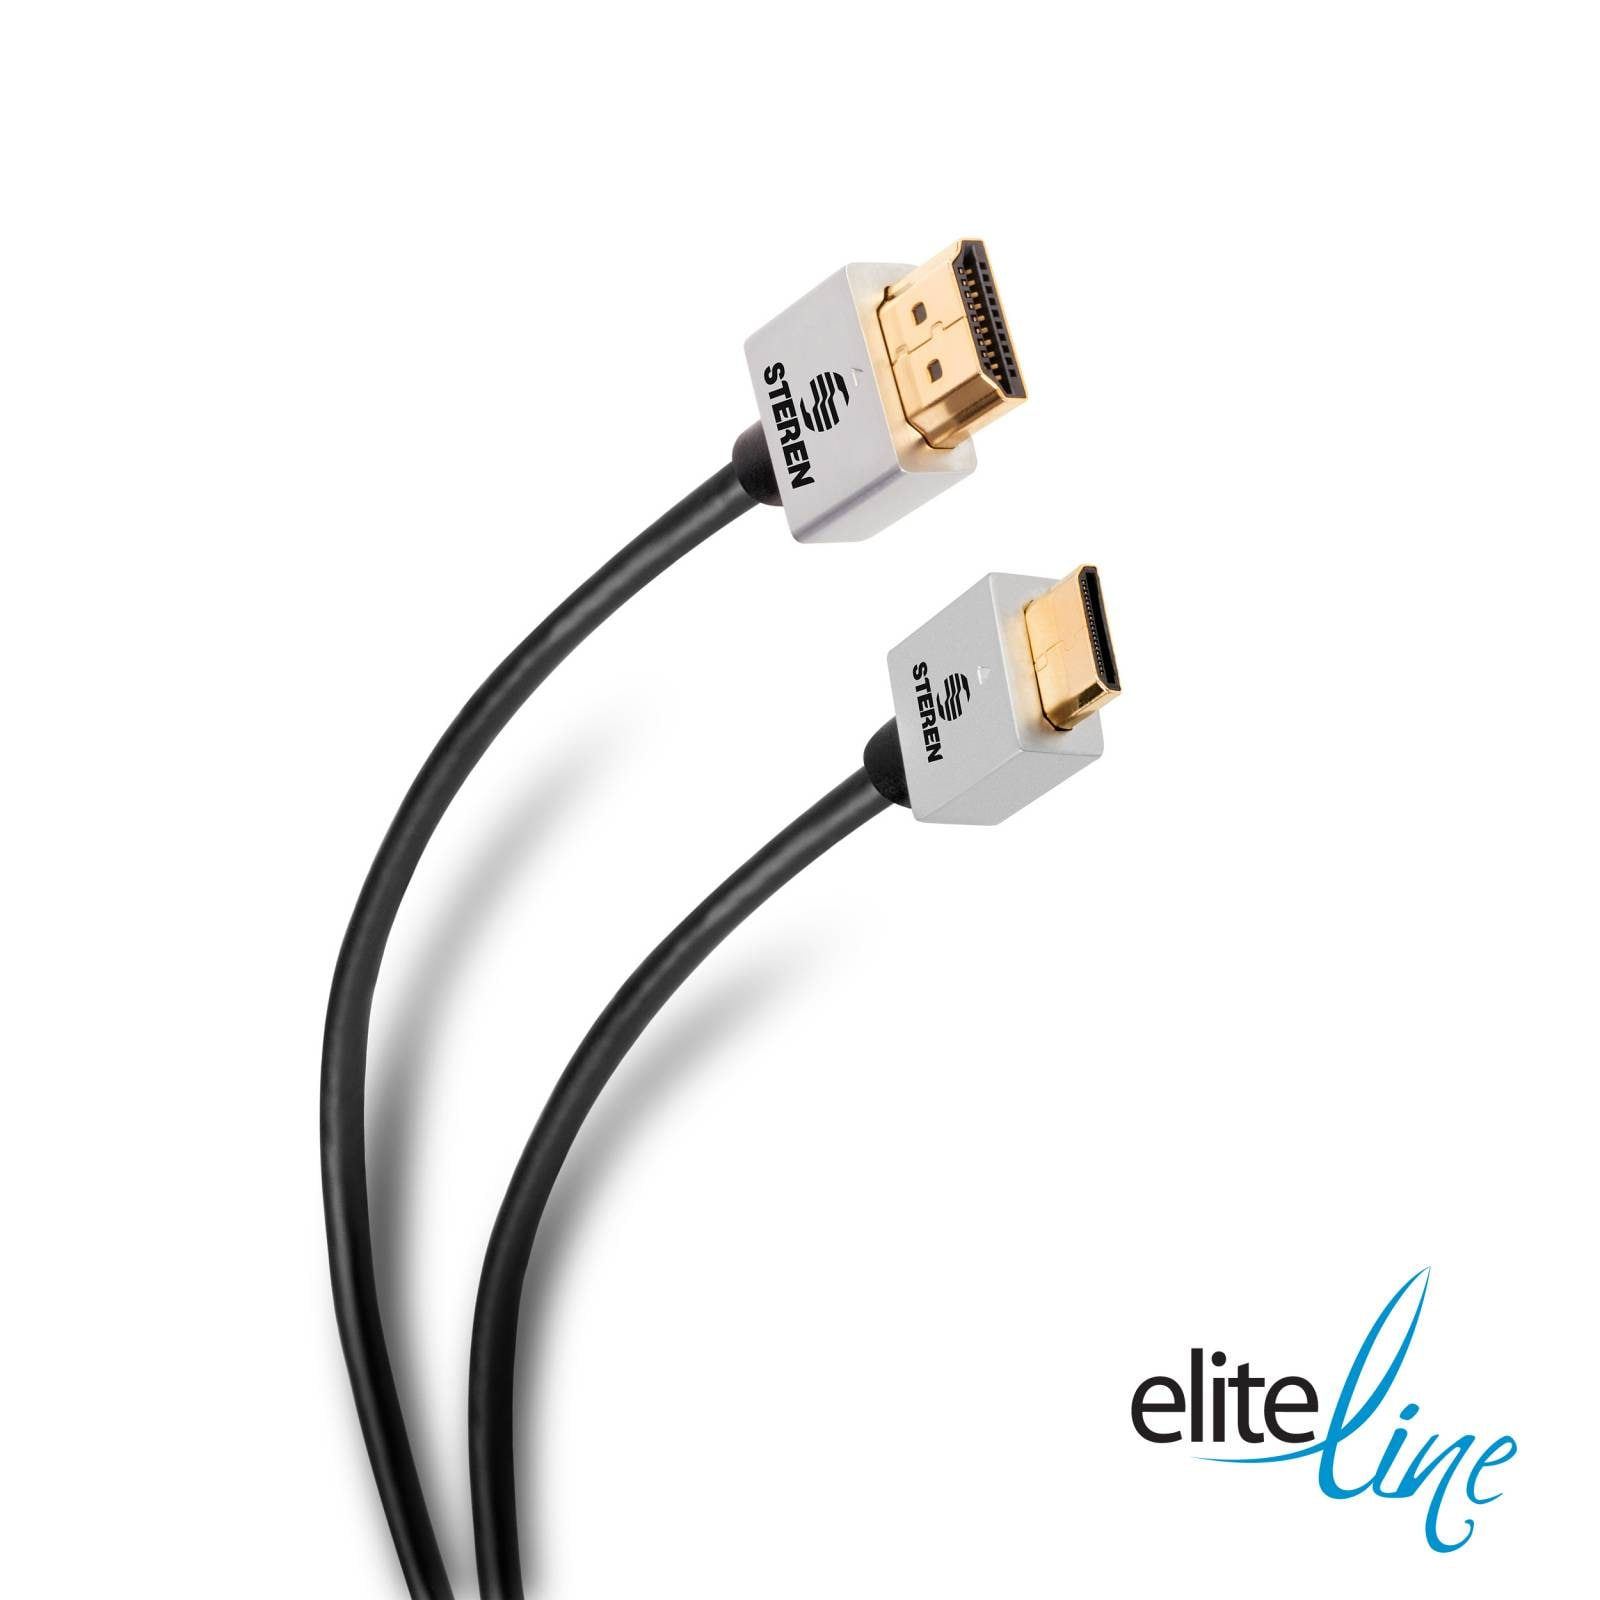 Cable Elite 4K mini HDMI  a HDMI  ultra delgado, de 1,8m